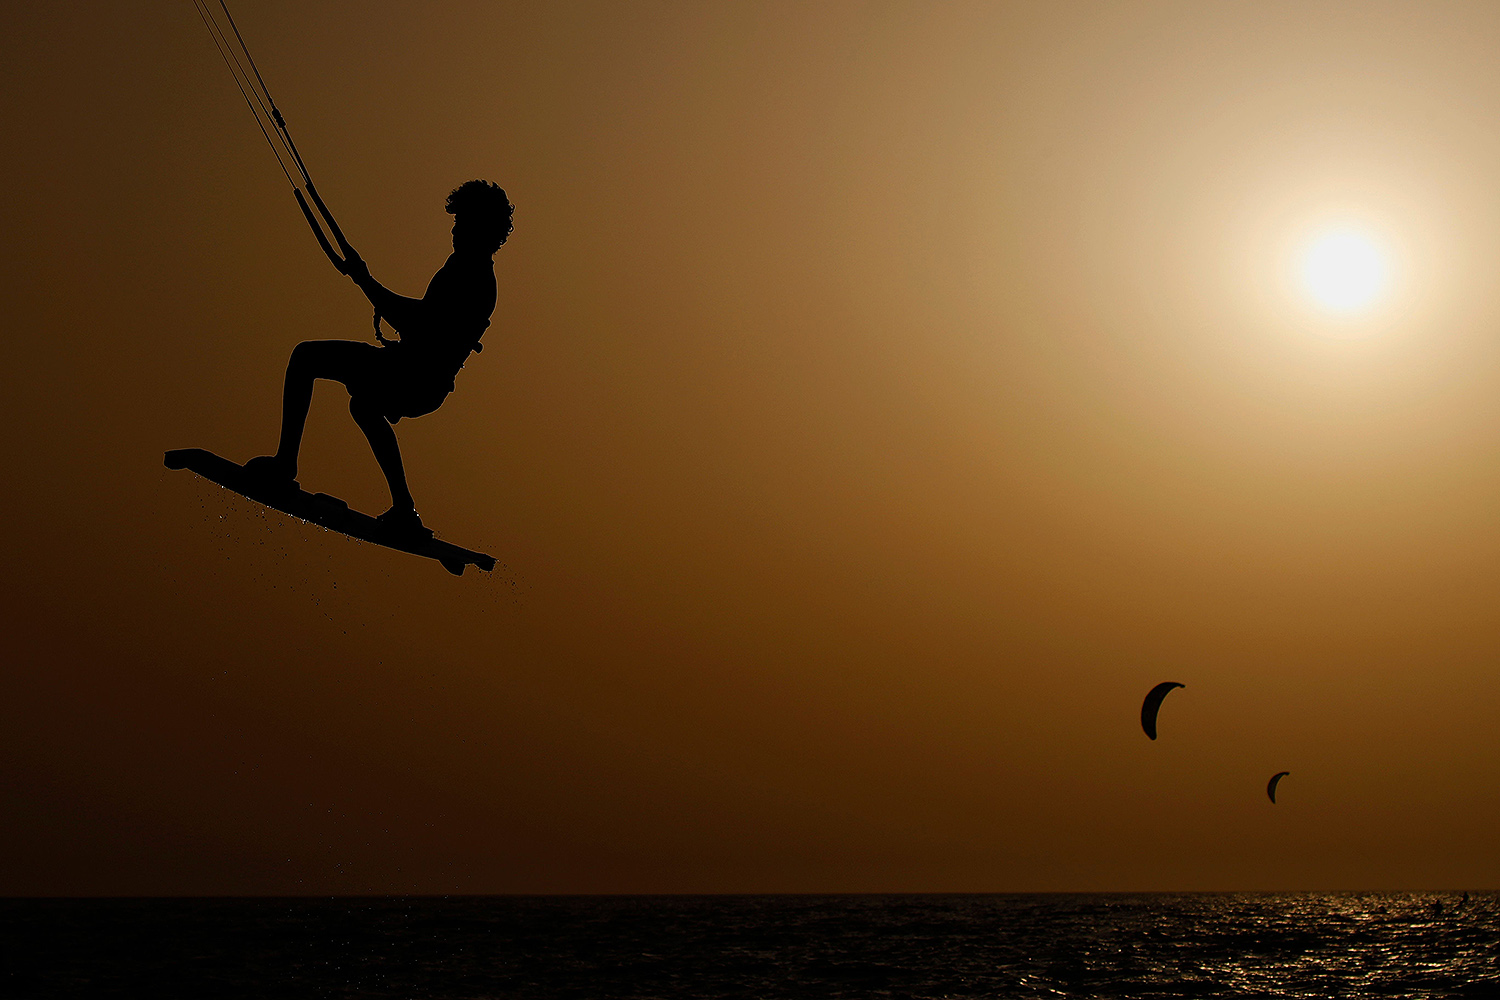 Kite surfers enjoy time on the water at Ramat Poleg beach in the Israeli coastal city of Netanya on May 18, 2020. JACK GUEZ/AFP via Getty Images